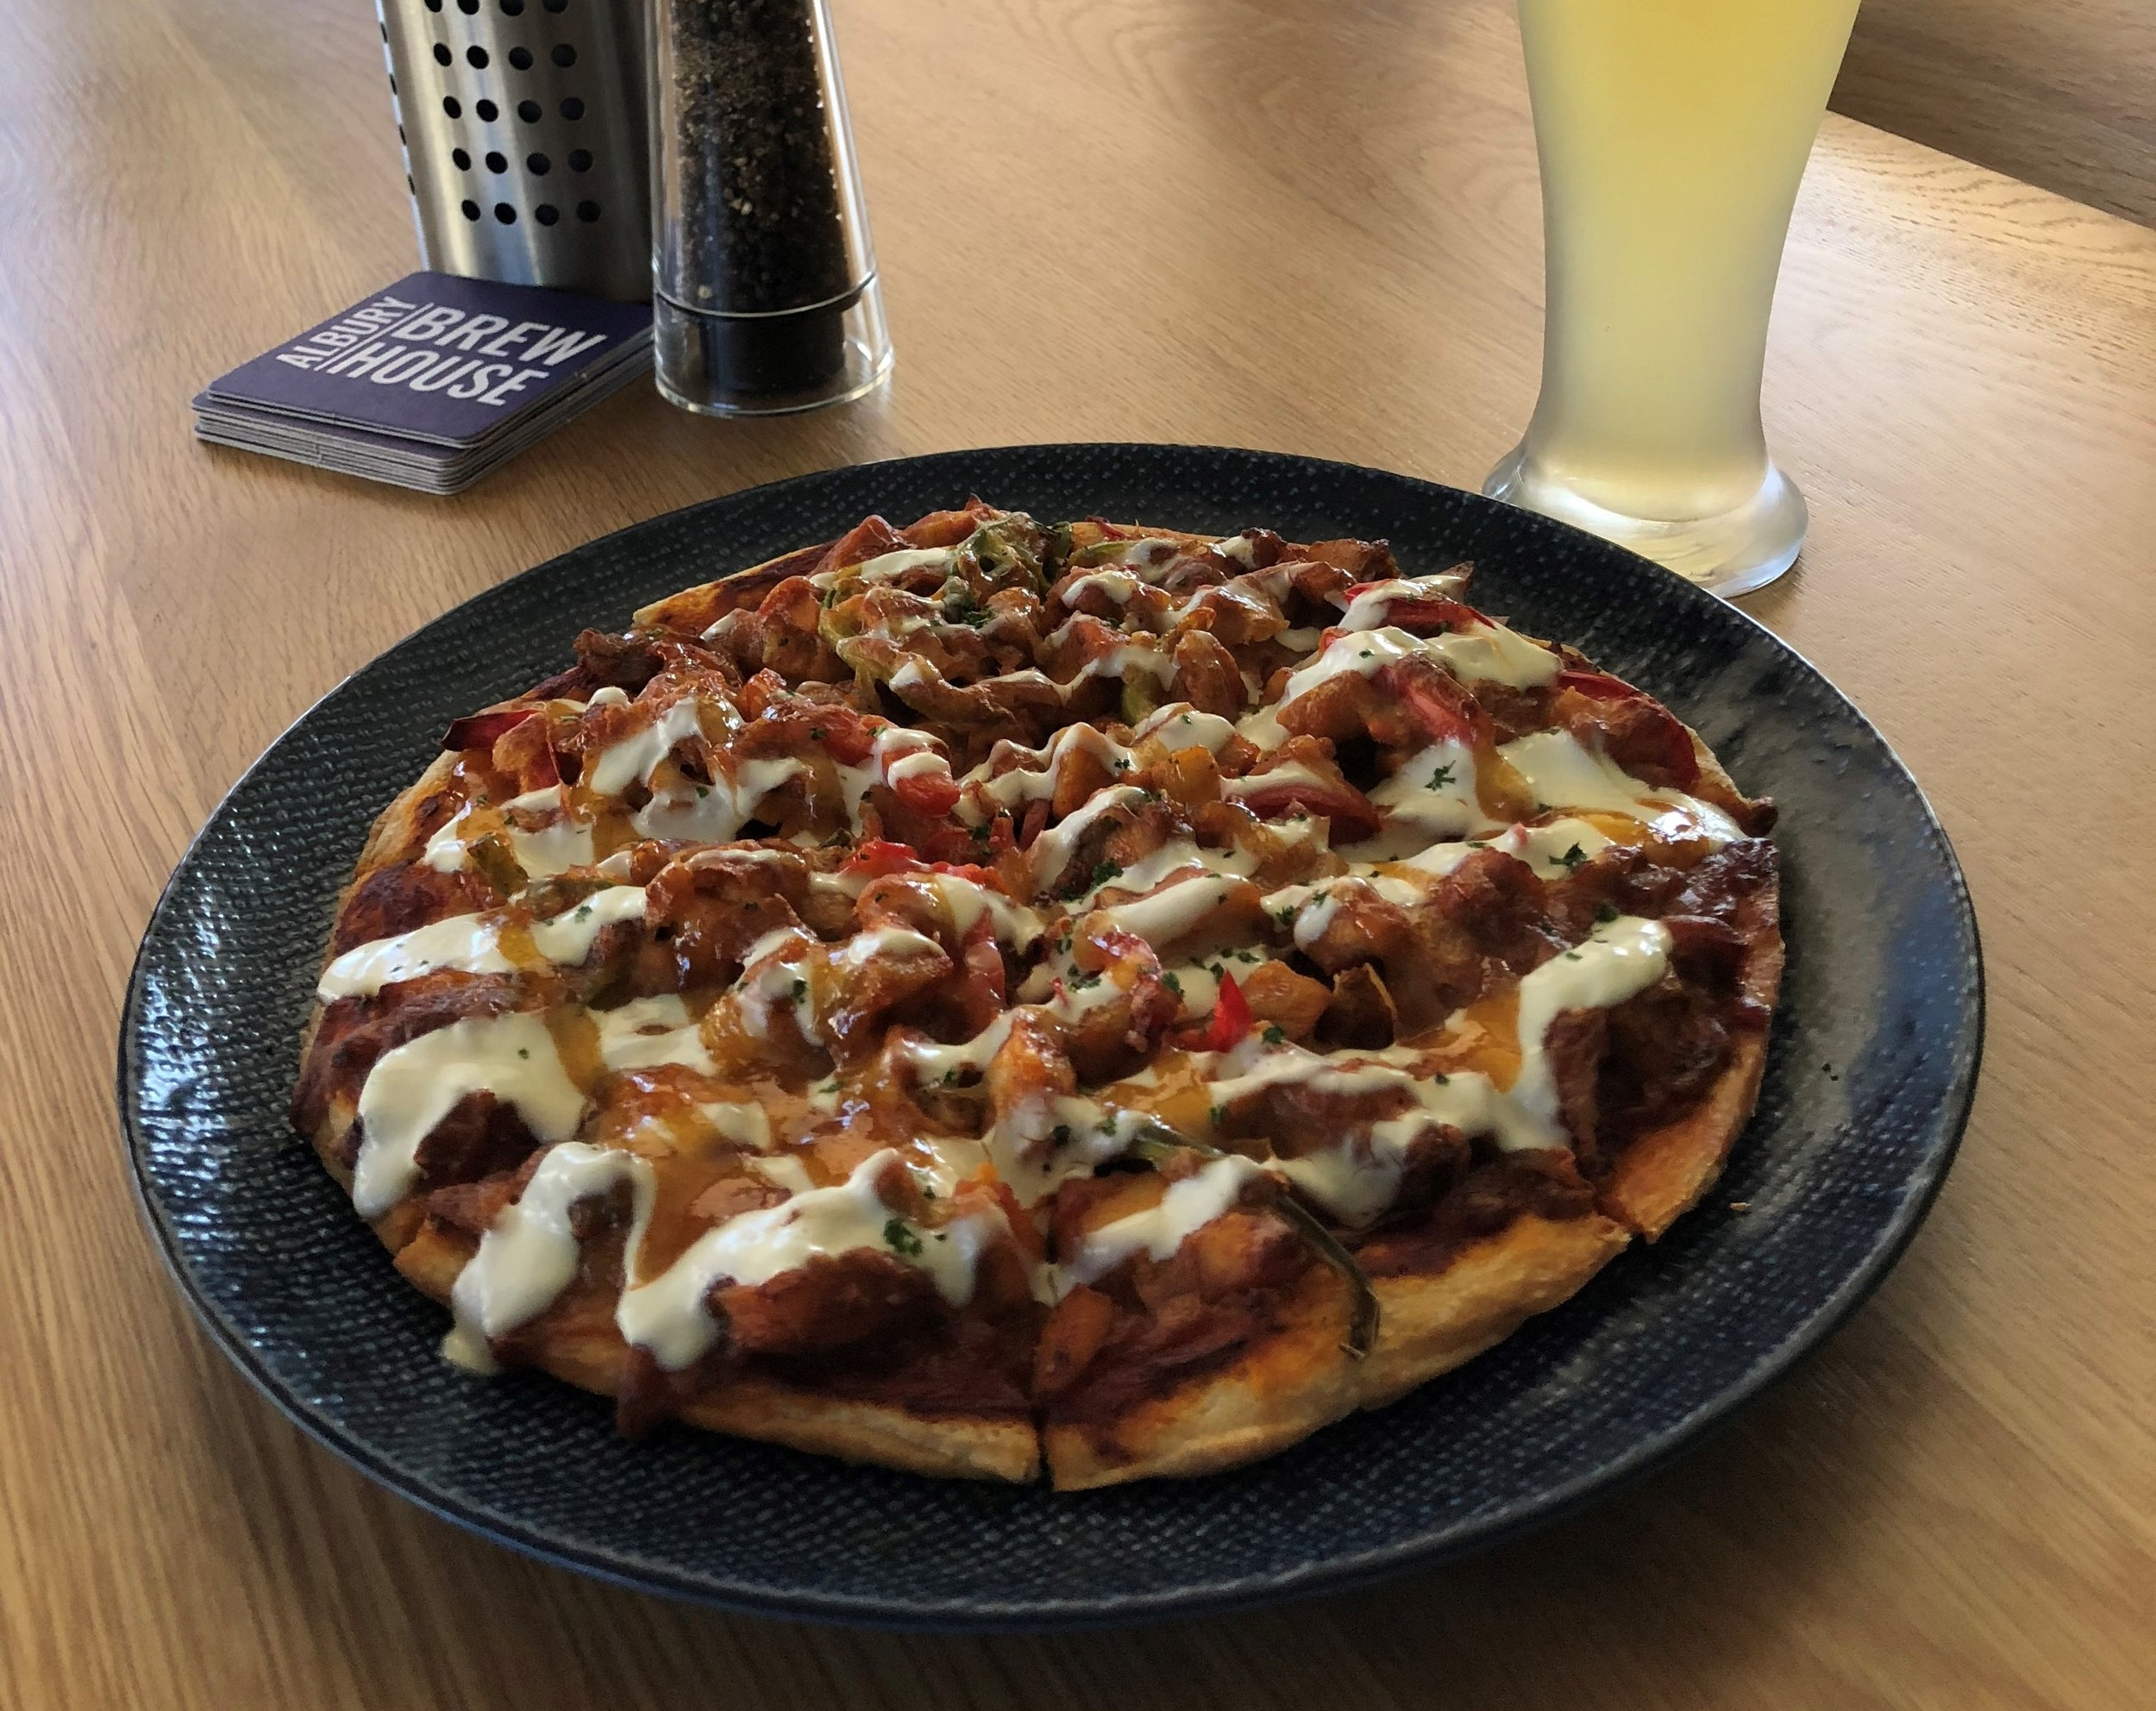 Tando Chick Pizza w Ginger Beer.jpg